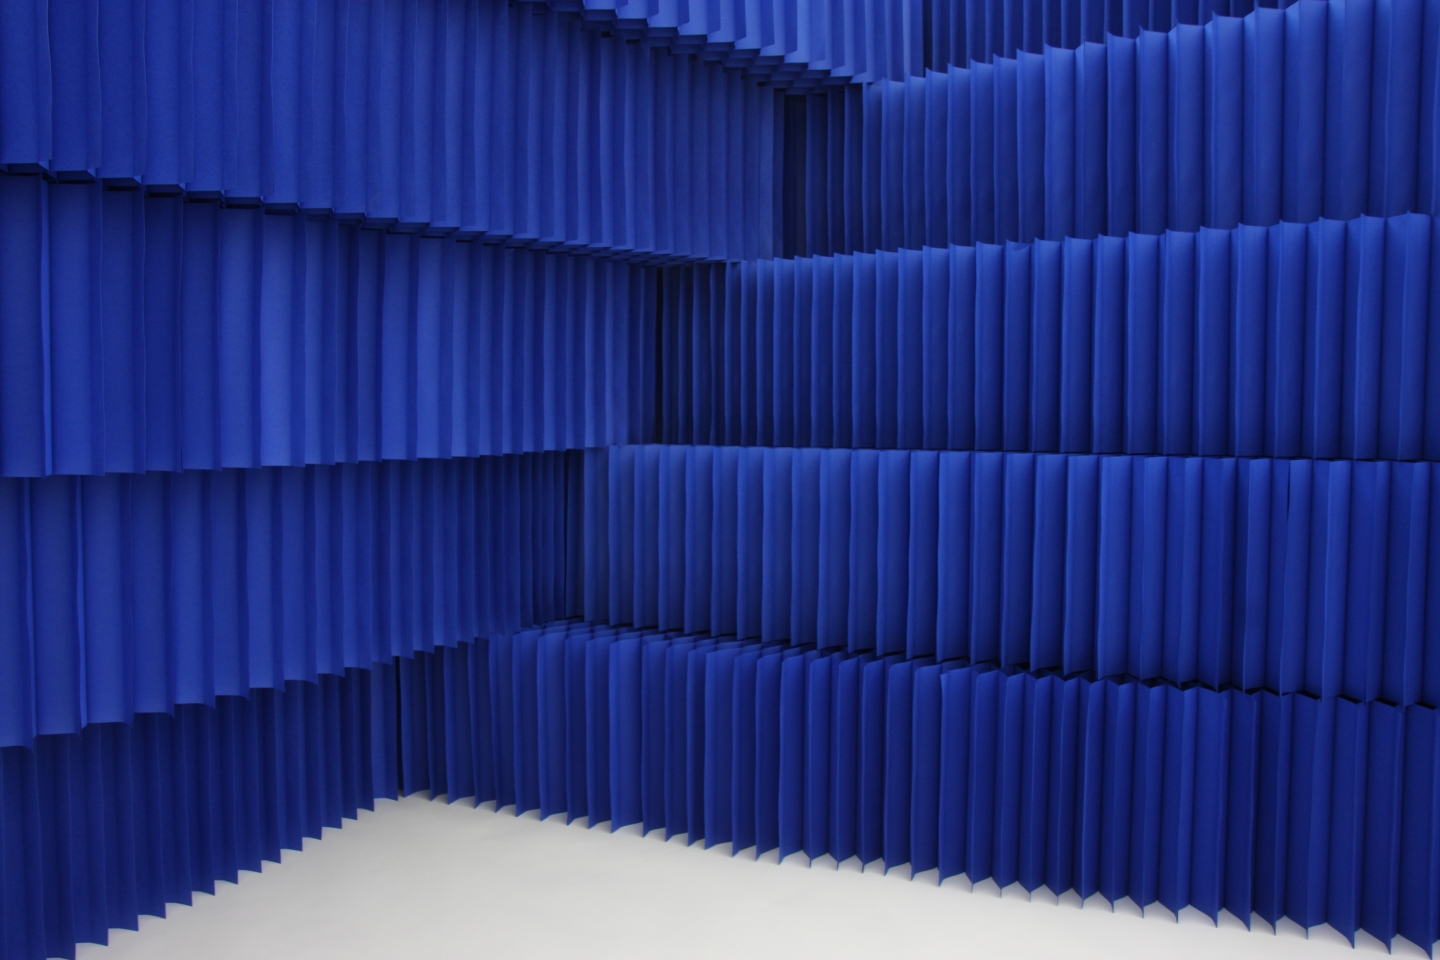 a stack of indigo blue softblocks - moveable modular room divider by molo